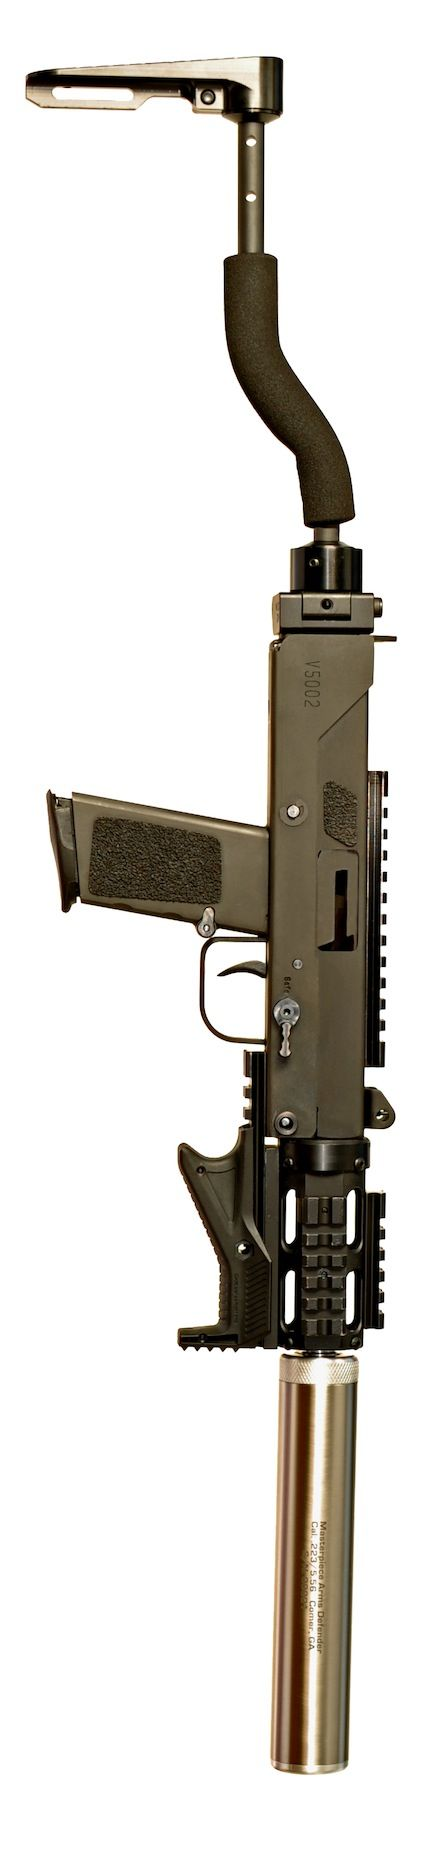 Masterpiece Arms-mpa570sst_5.7x28mm  Cycles hi-vel, and subsonic ammo w/o adjustment...